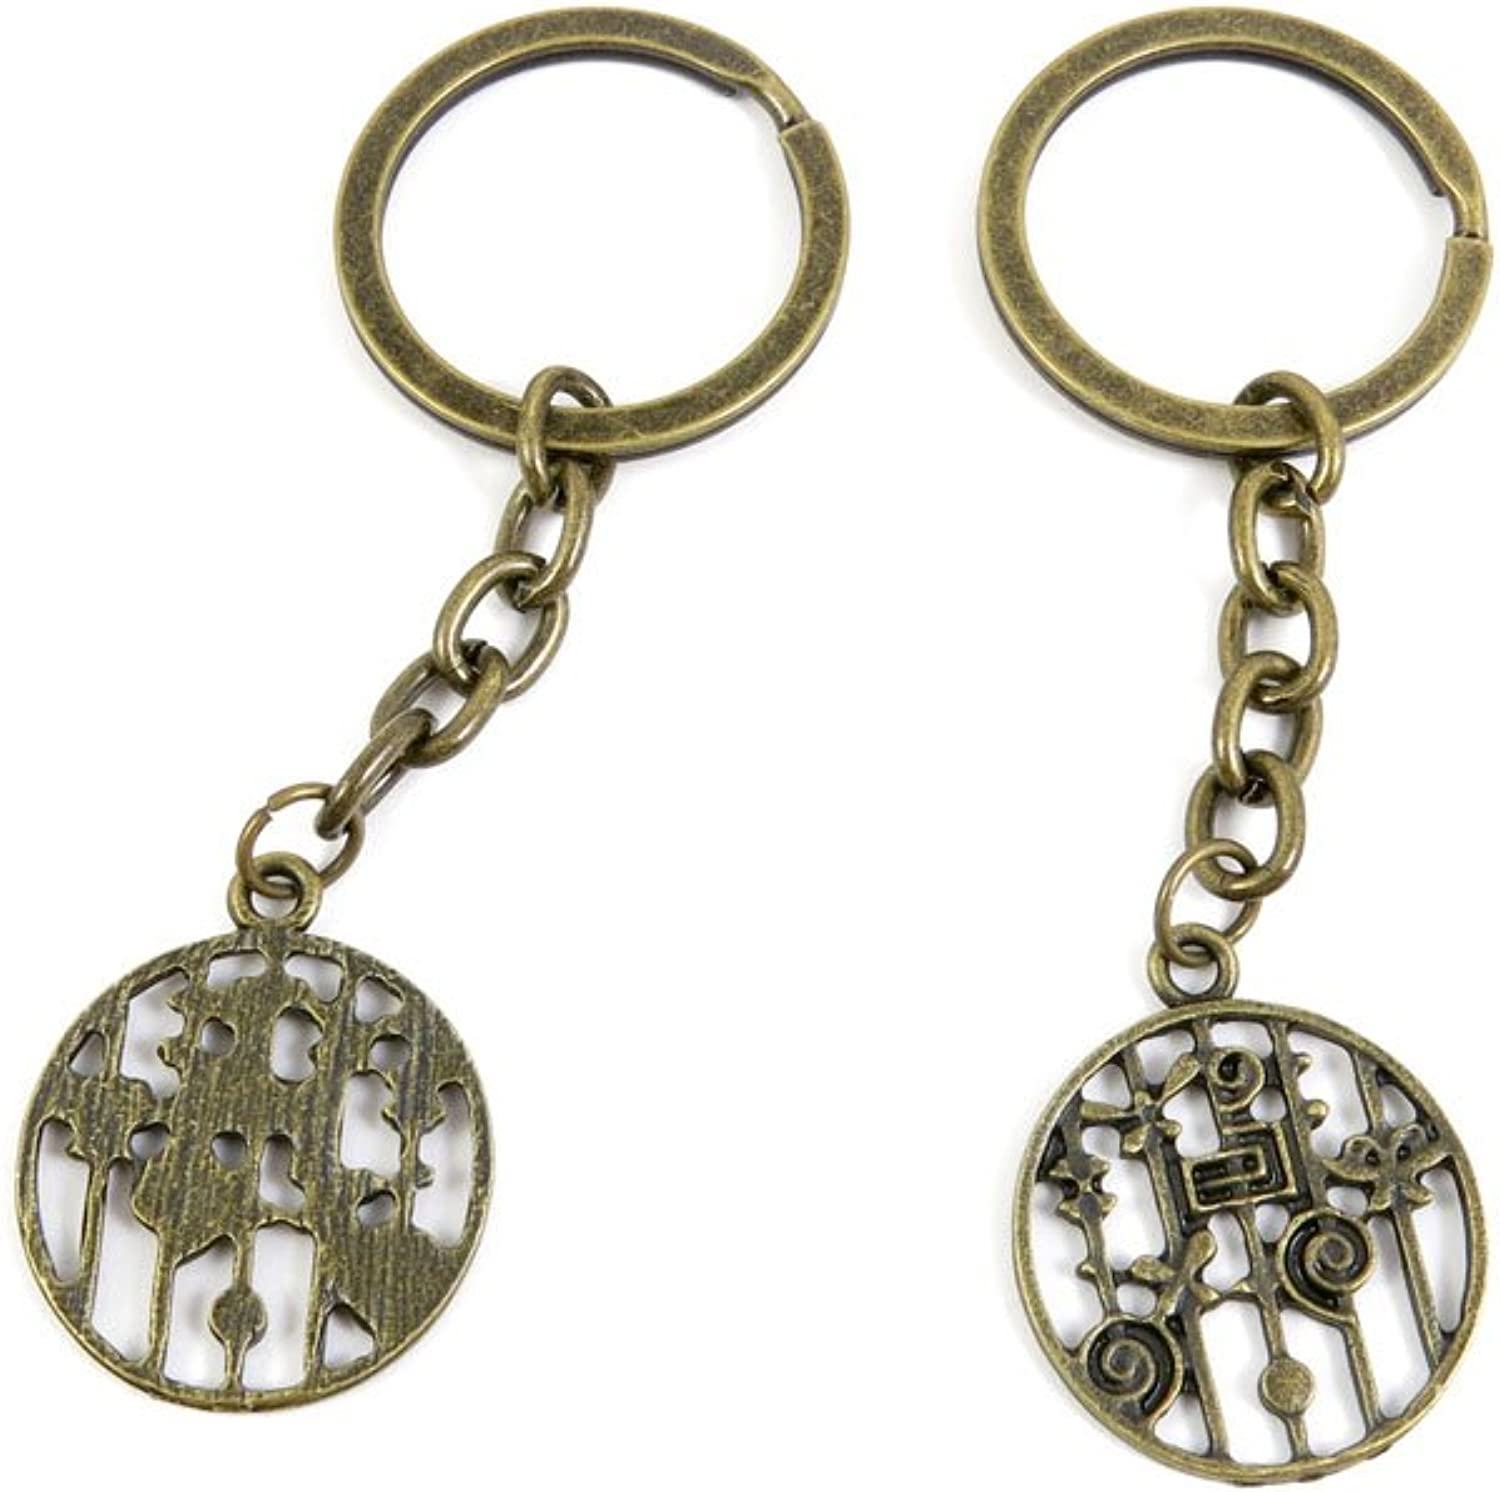 80 PCS Keyring Car Door Key Ring Tag Chain Keychain Wholesale Suppliers Charms Handmade S2ZV7 Flower Round Signs